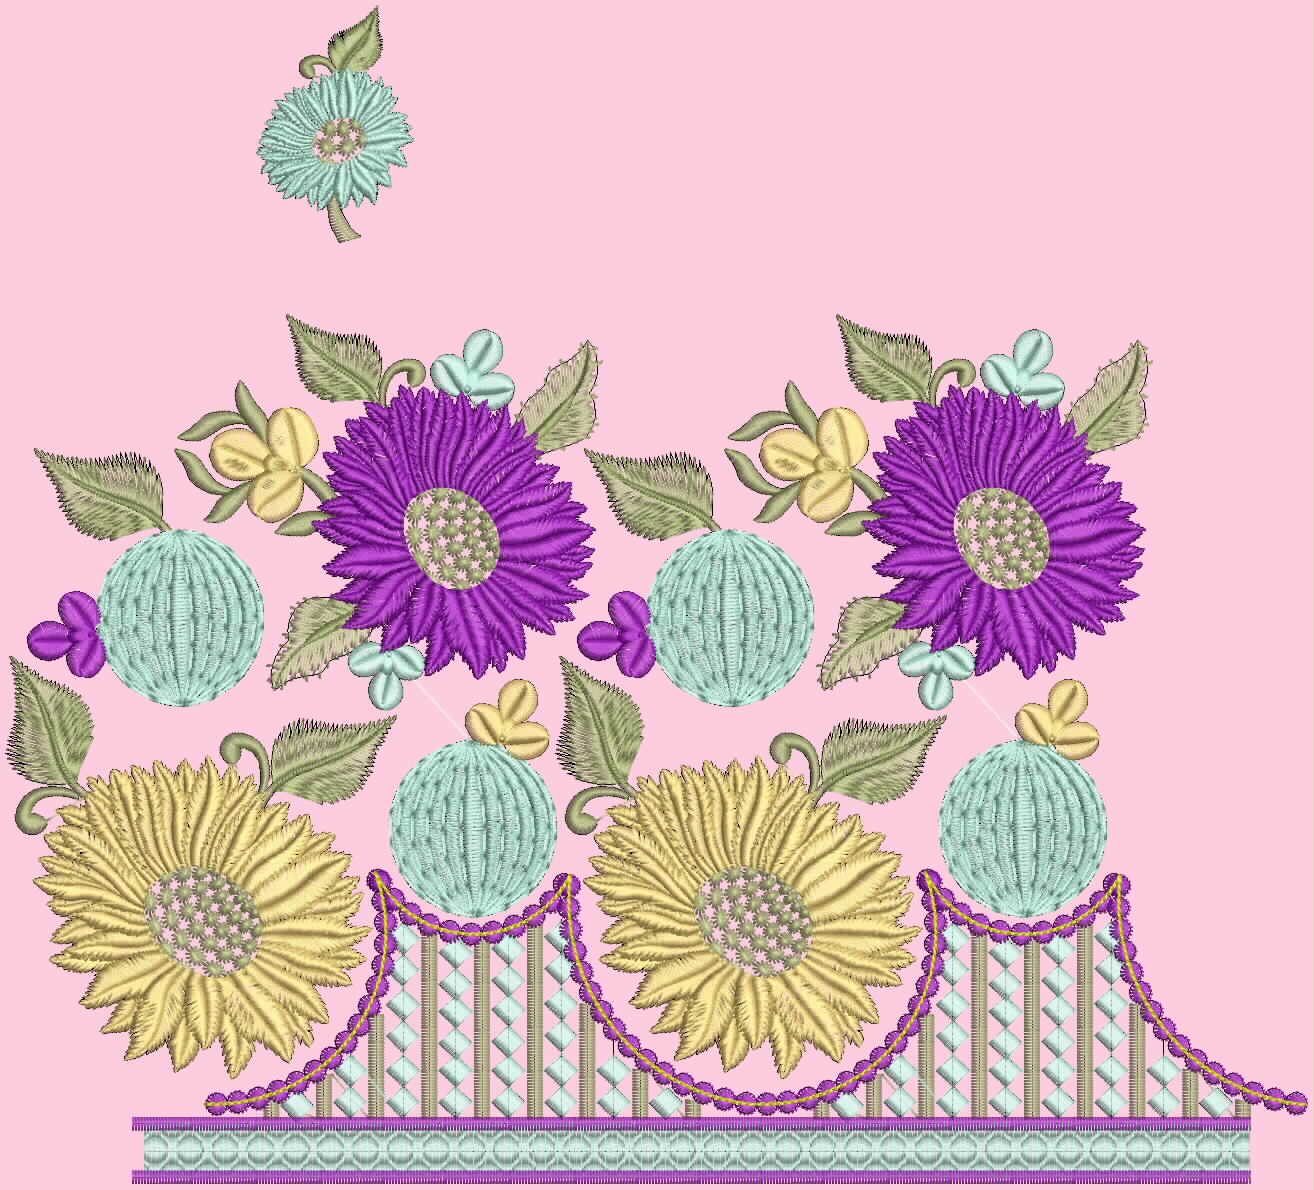 The fresh and new computer embroidery design for wonderful floral and